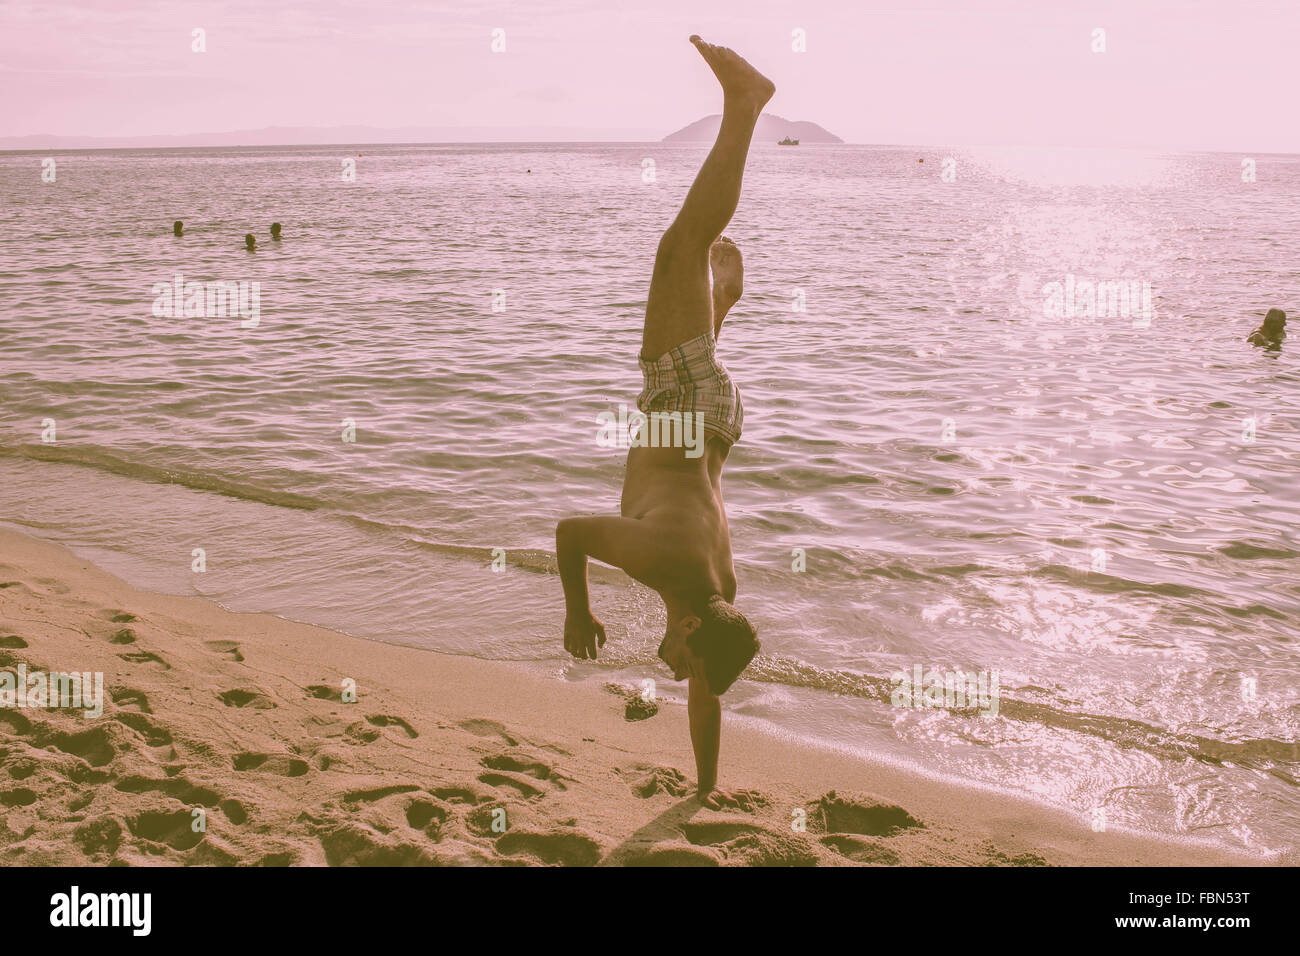 Man Doing Handstand On The Beach - Stock Image